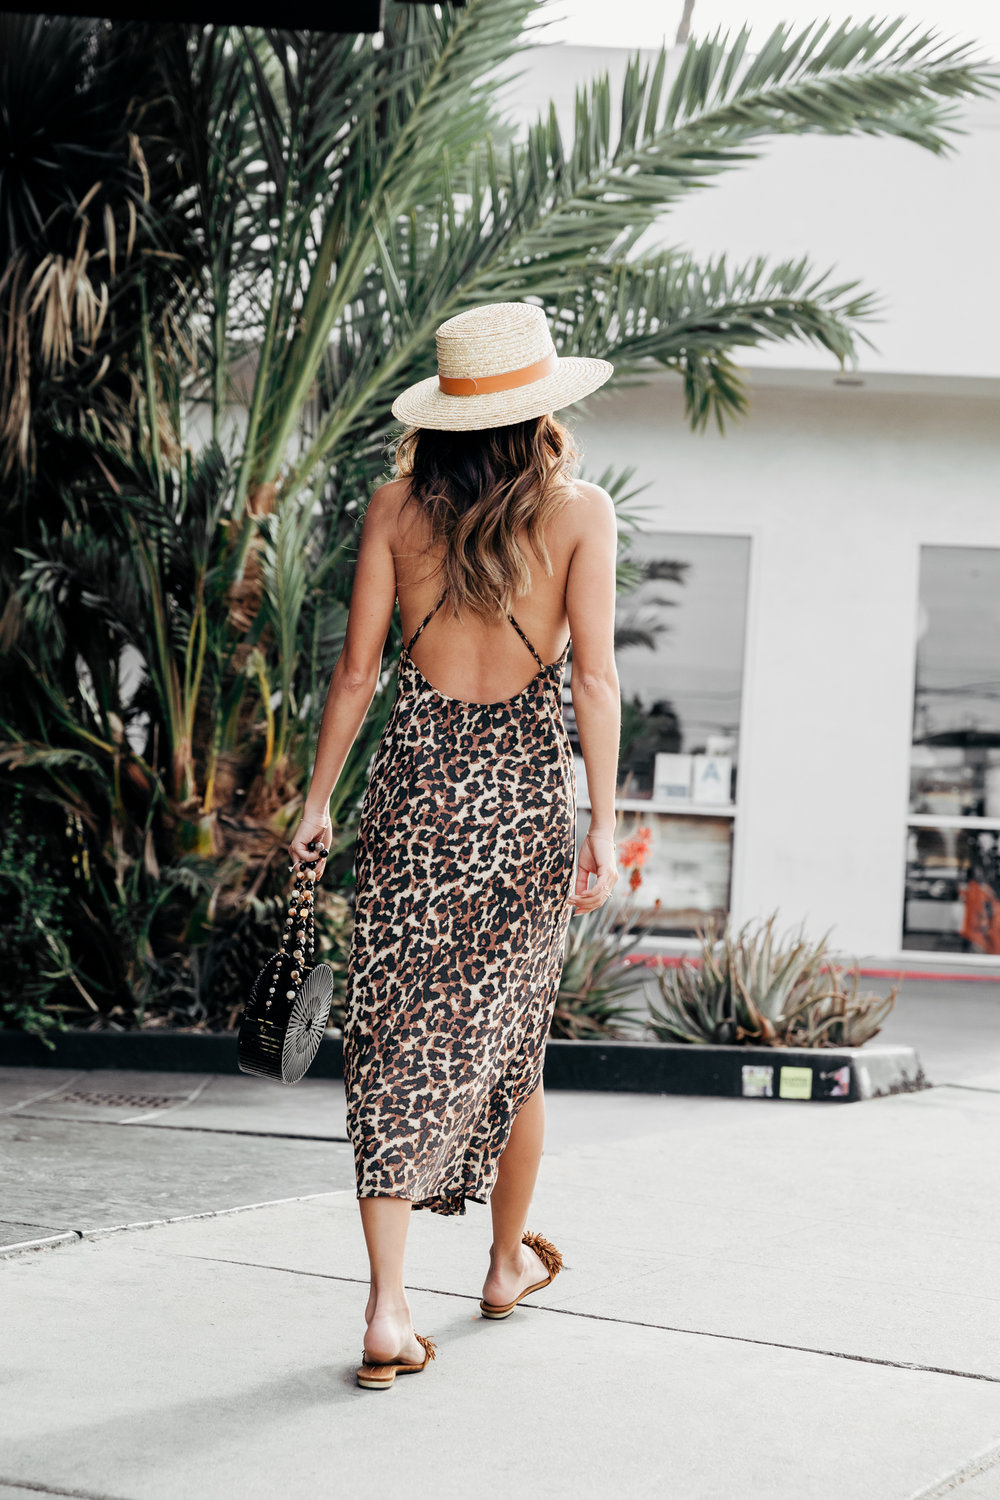 How to wear a slip dress out for summer - Everyday Pursuits in Endless Summer